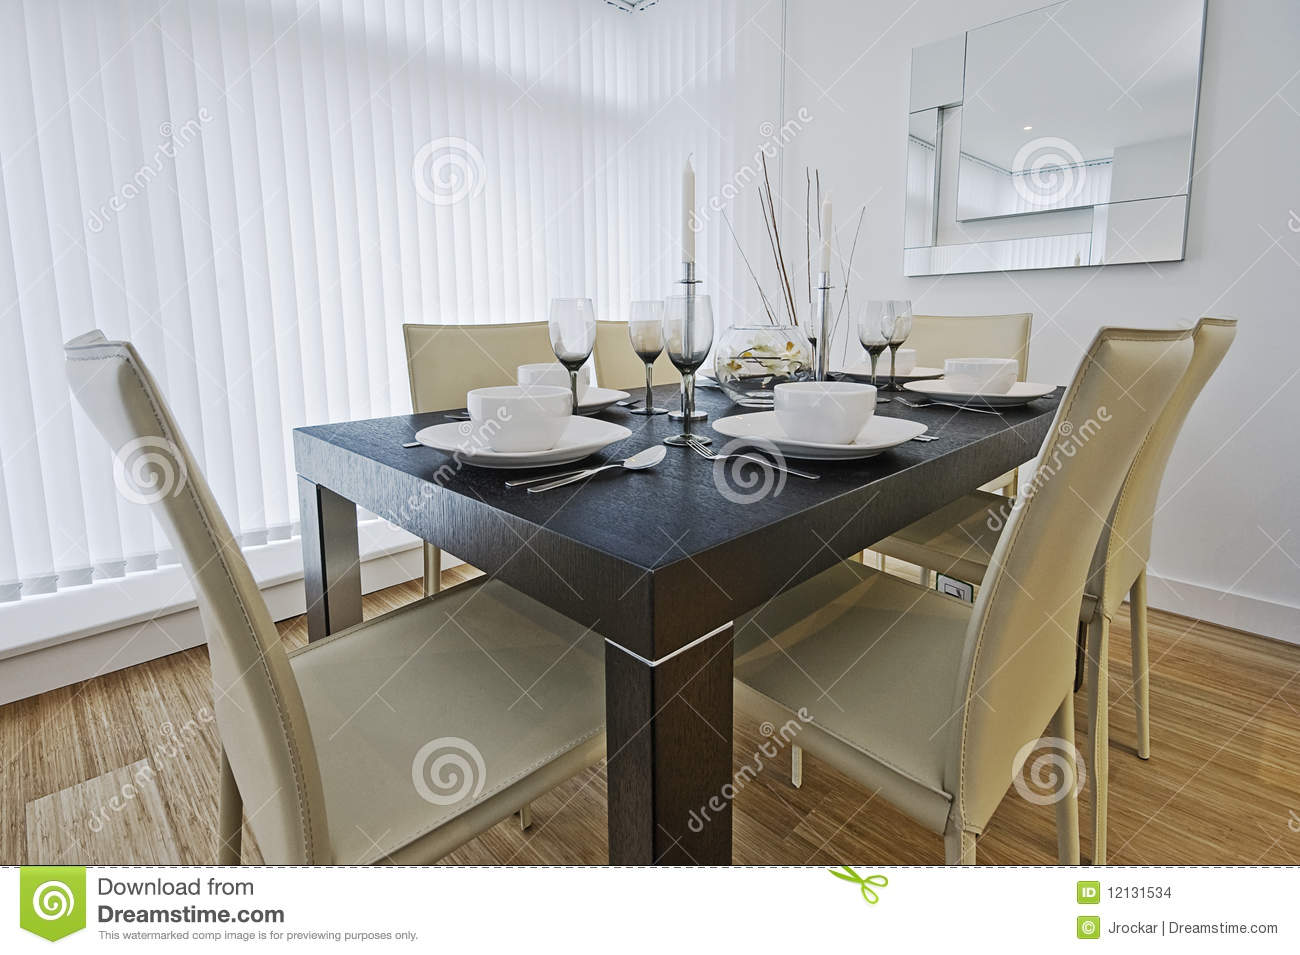 Luxury Dining Table Setup Stock Photo Image Of Leather 12131534